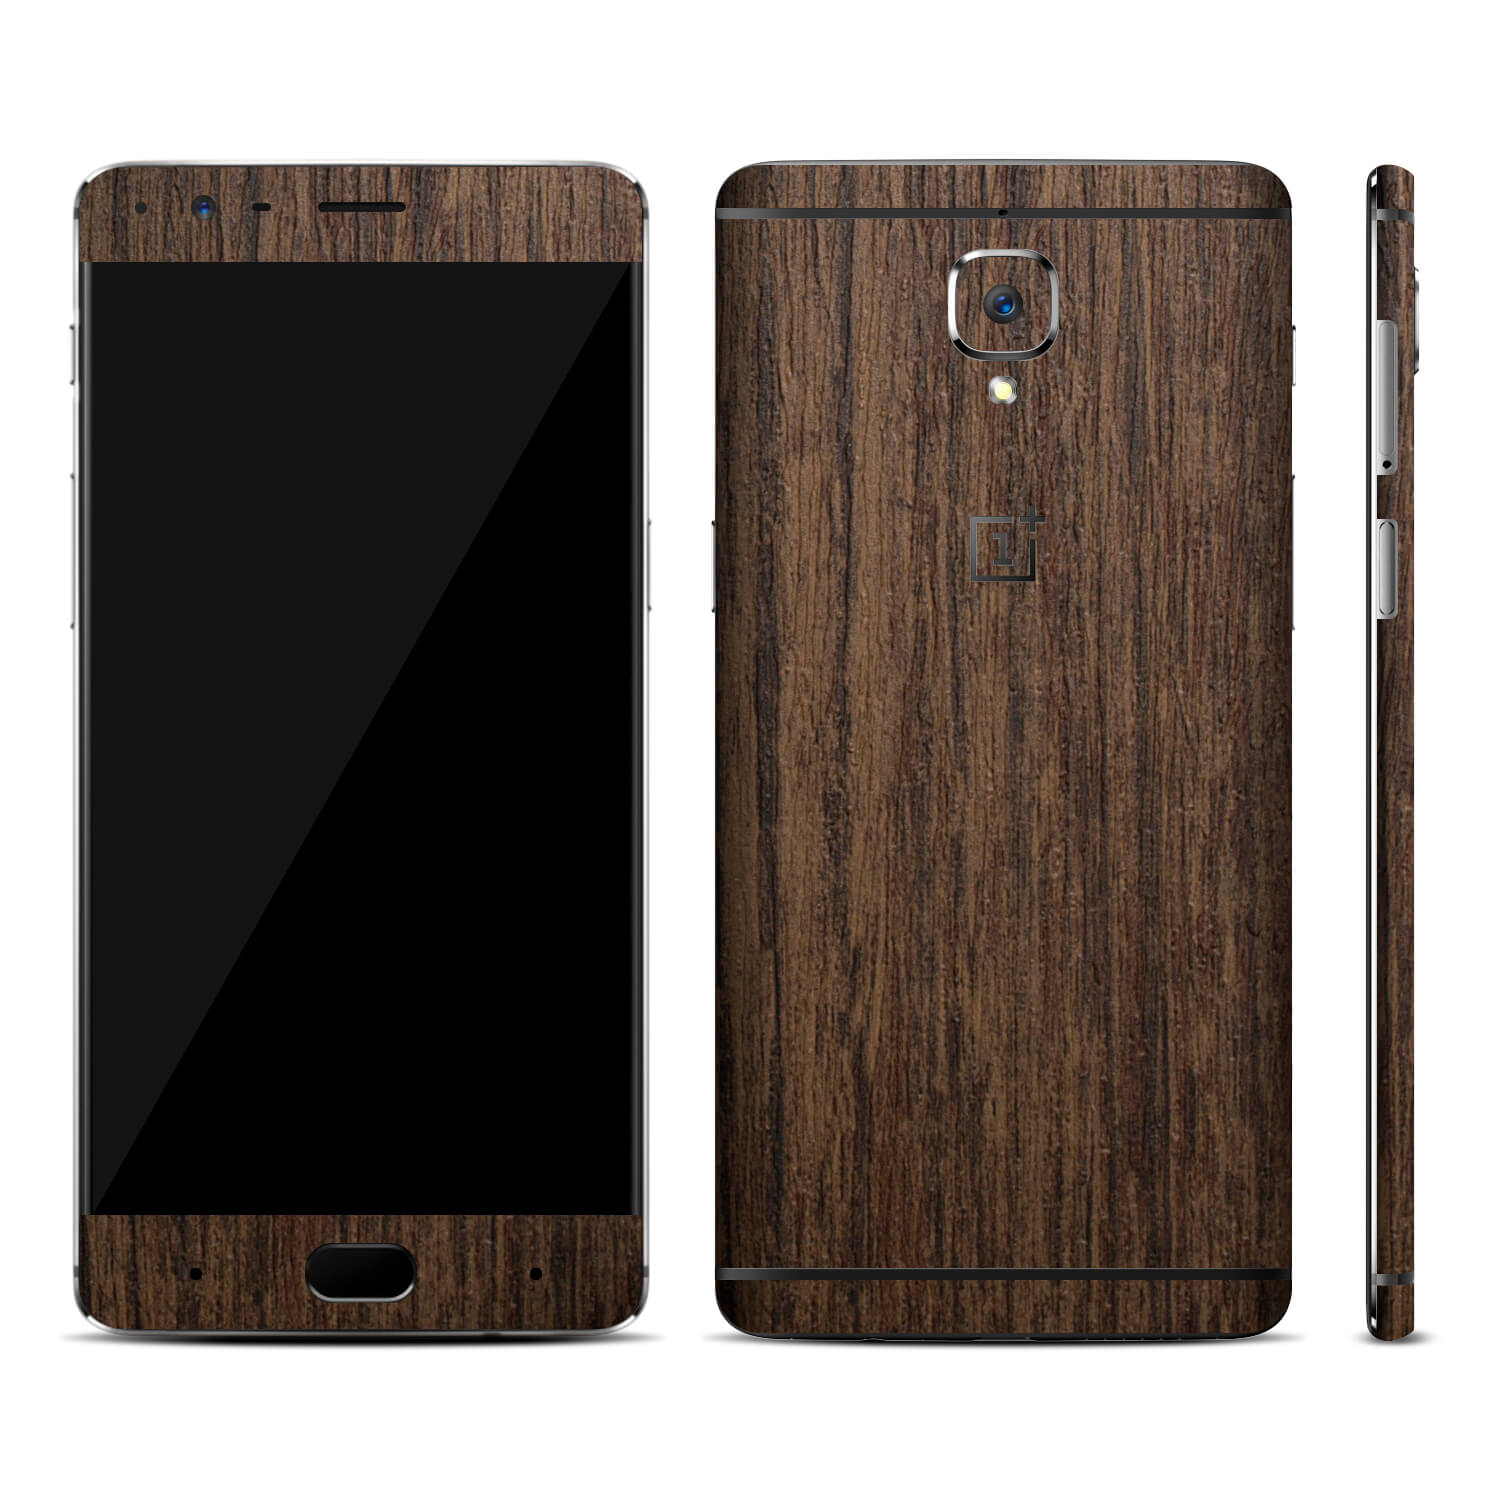 huge selection of 66e51 ccb77 OnePlus 3T Skins